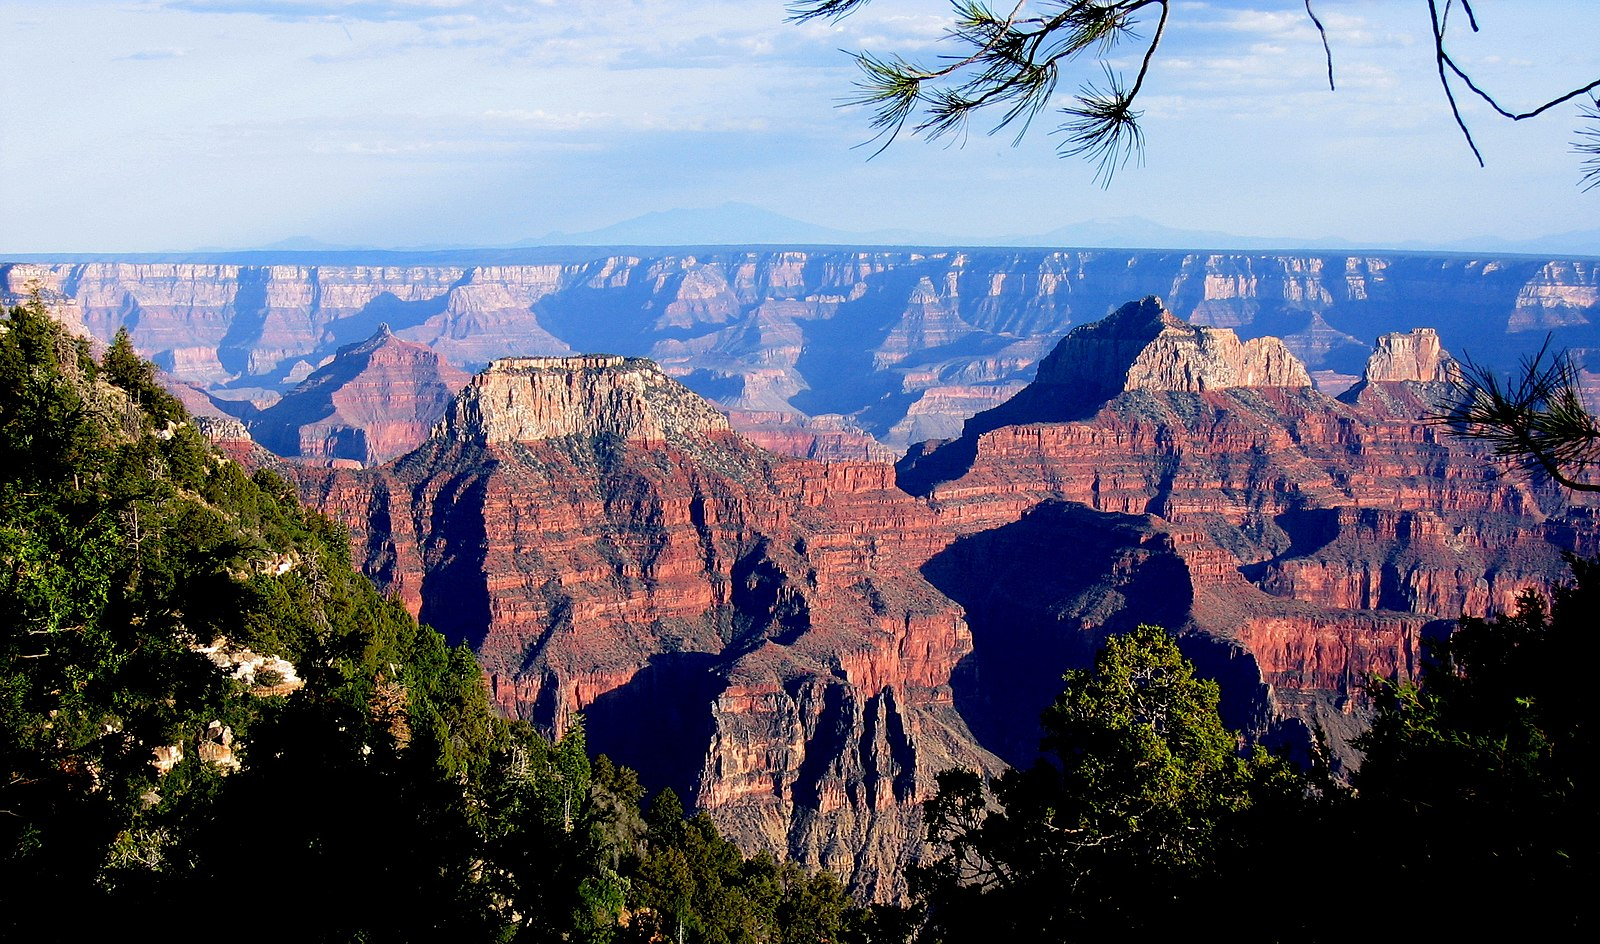 1600px-Grand_Canyon_from_North_Rim_Trail_by_Evening_Light_by_Erik_Voss_IMG_3783.jpg